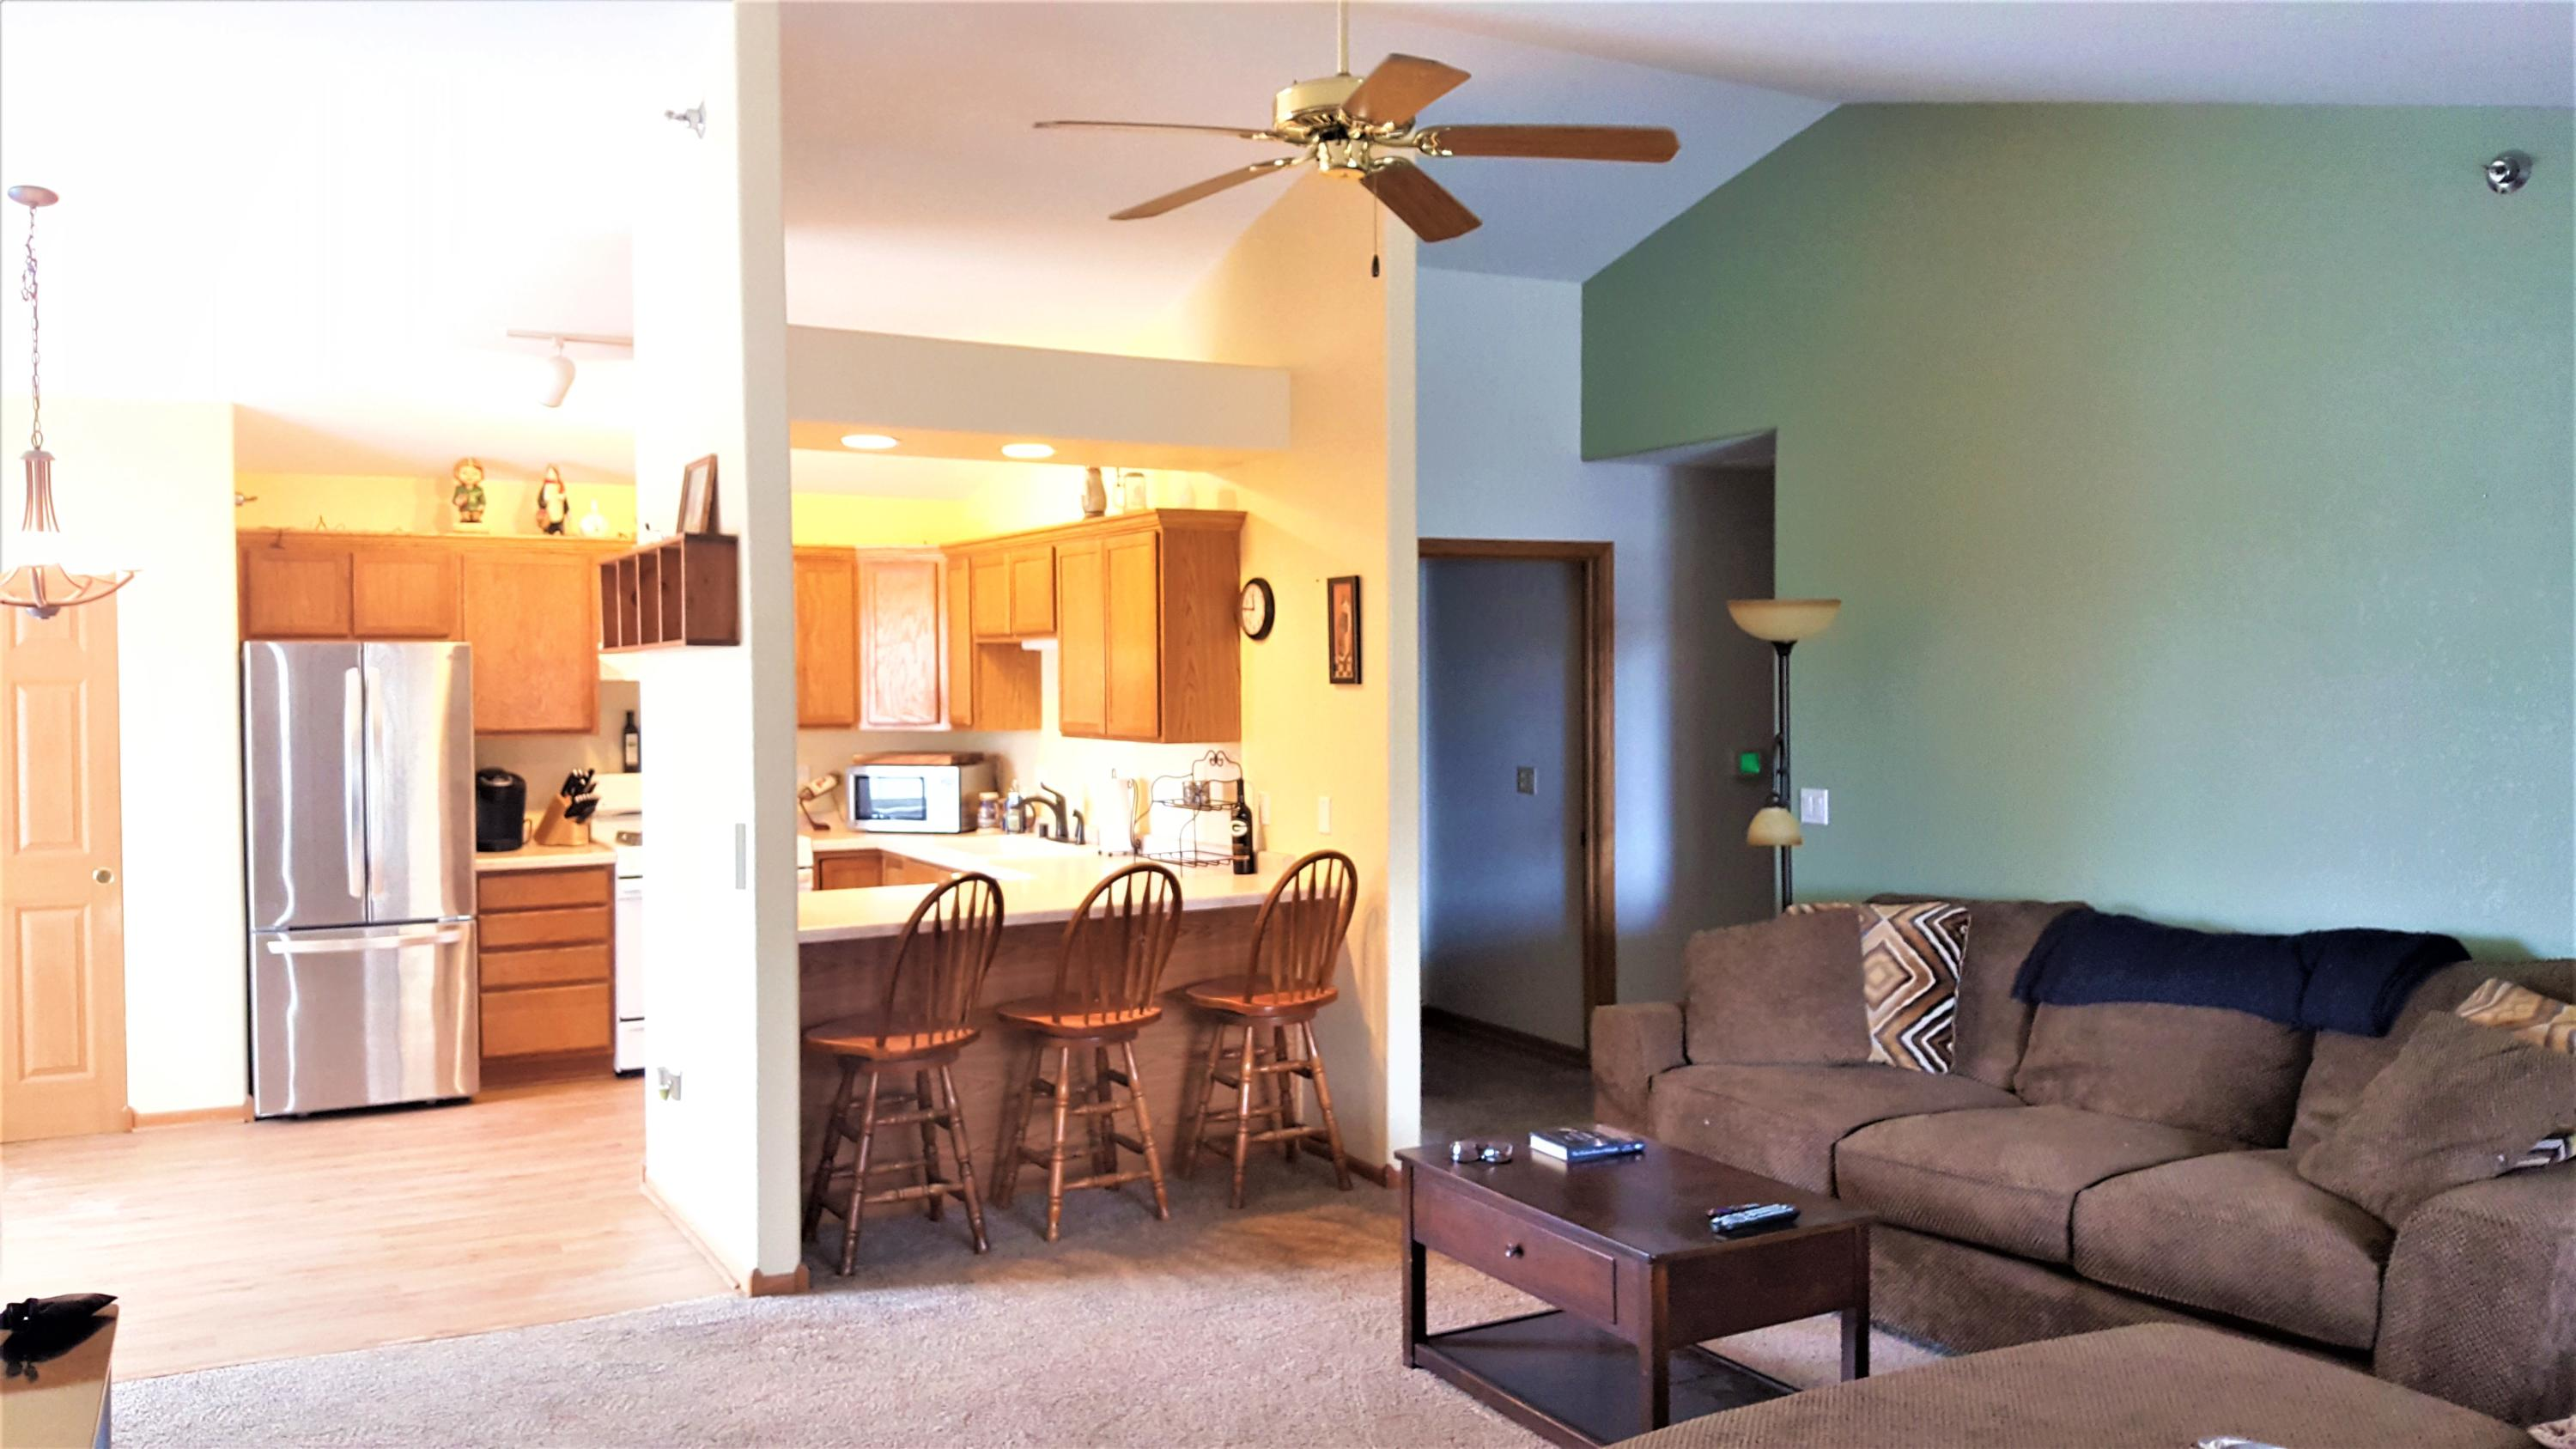 1038 River Place Blvd, Waukesha, Wisconsin 53189, 3 Bedrooms Bedrooms, 5 Rooms Rooms,2 BathroomsBathrooms,Condominiums,For Sale,River Place Blvd,2,1626305